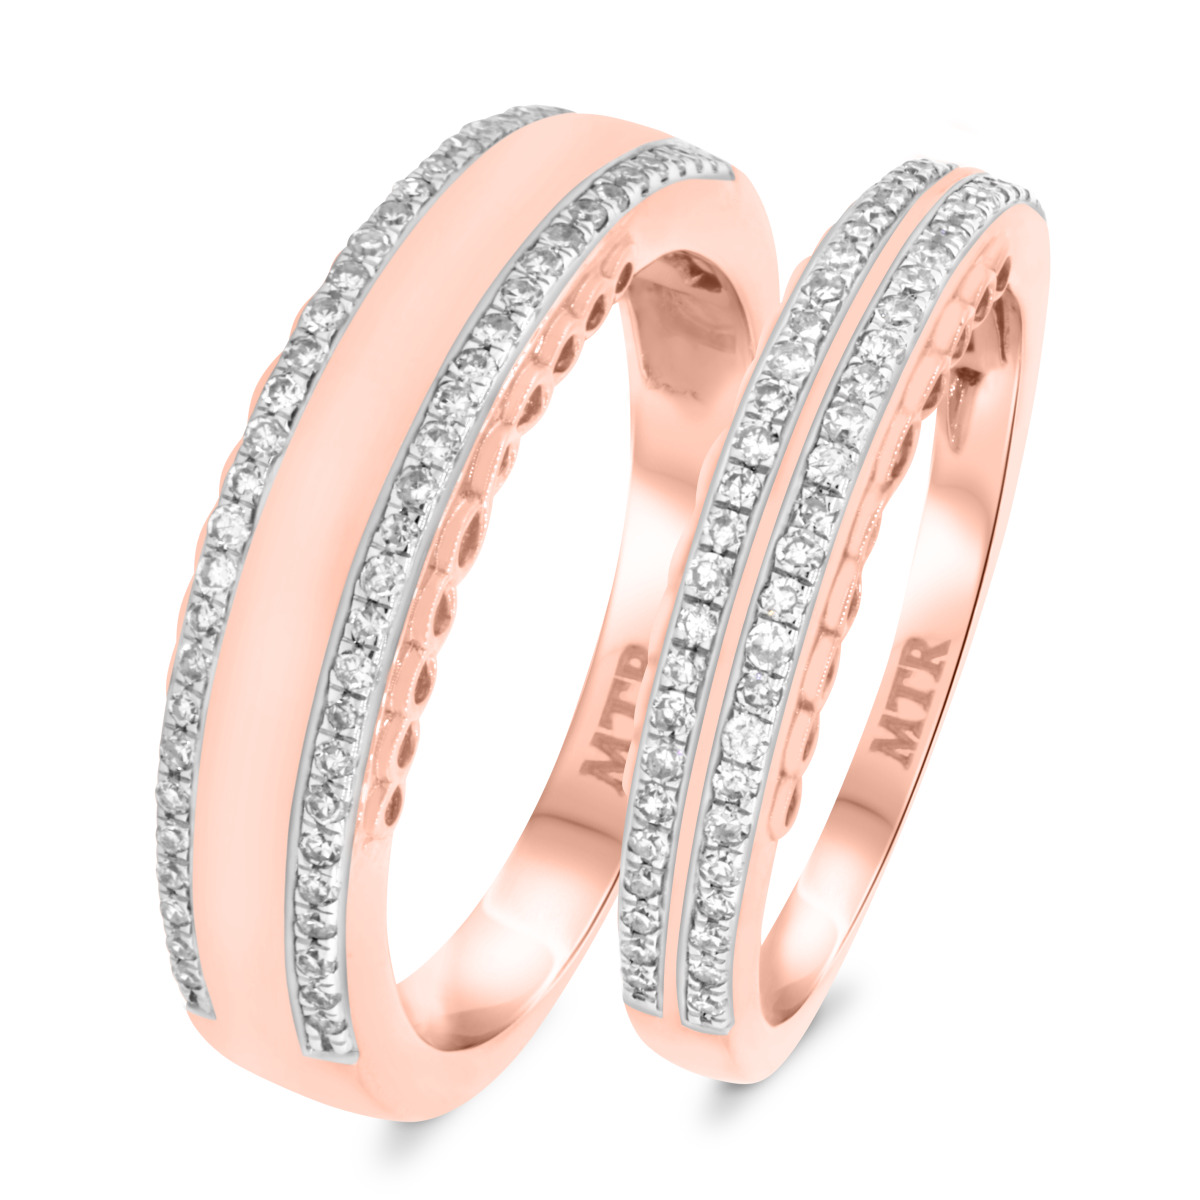 1/2 CT. T.W. Diamond Matching Wedding Band Set 10K Rose Gold